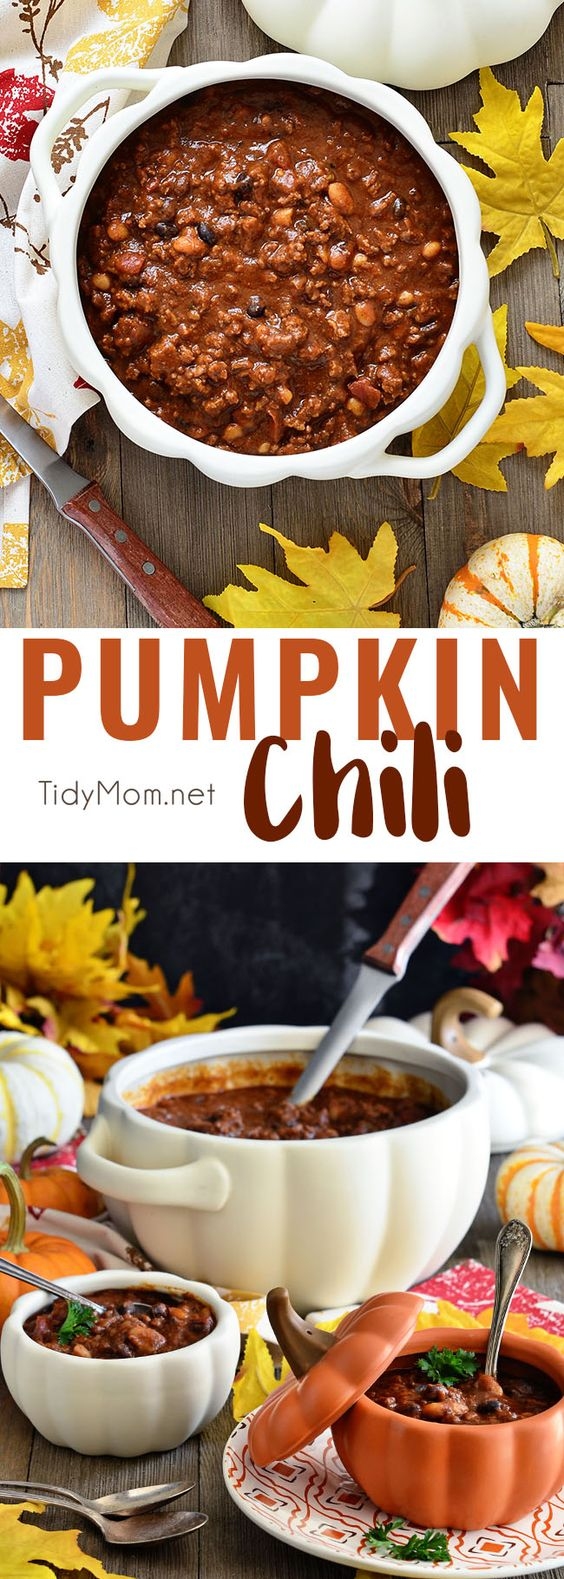 Pumpkin Chili is extra hearty with a delicious sweetness and earthy undertone that takes chili to a whole new level of good.  The perfect way to knock off the chill and satisfy hungry bellies.: